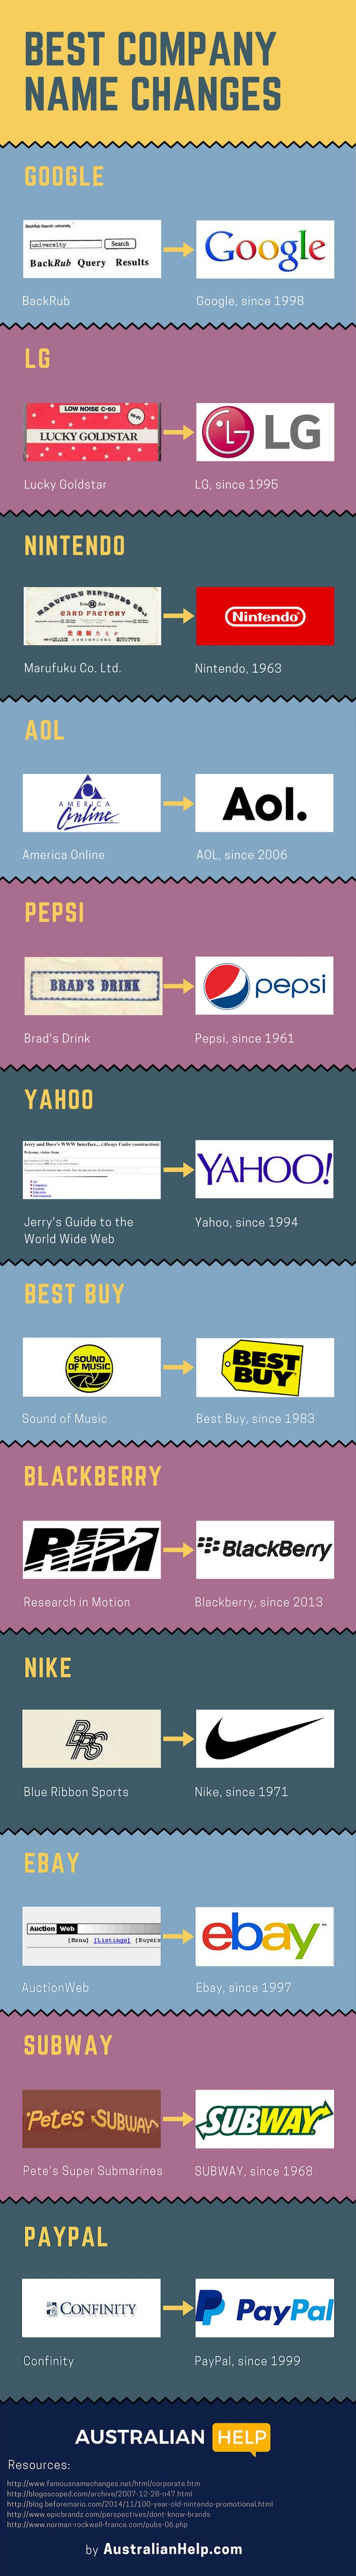 Best Company Name Changes #Infographic #Business